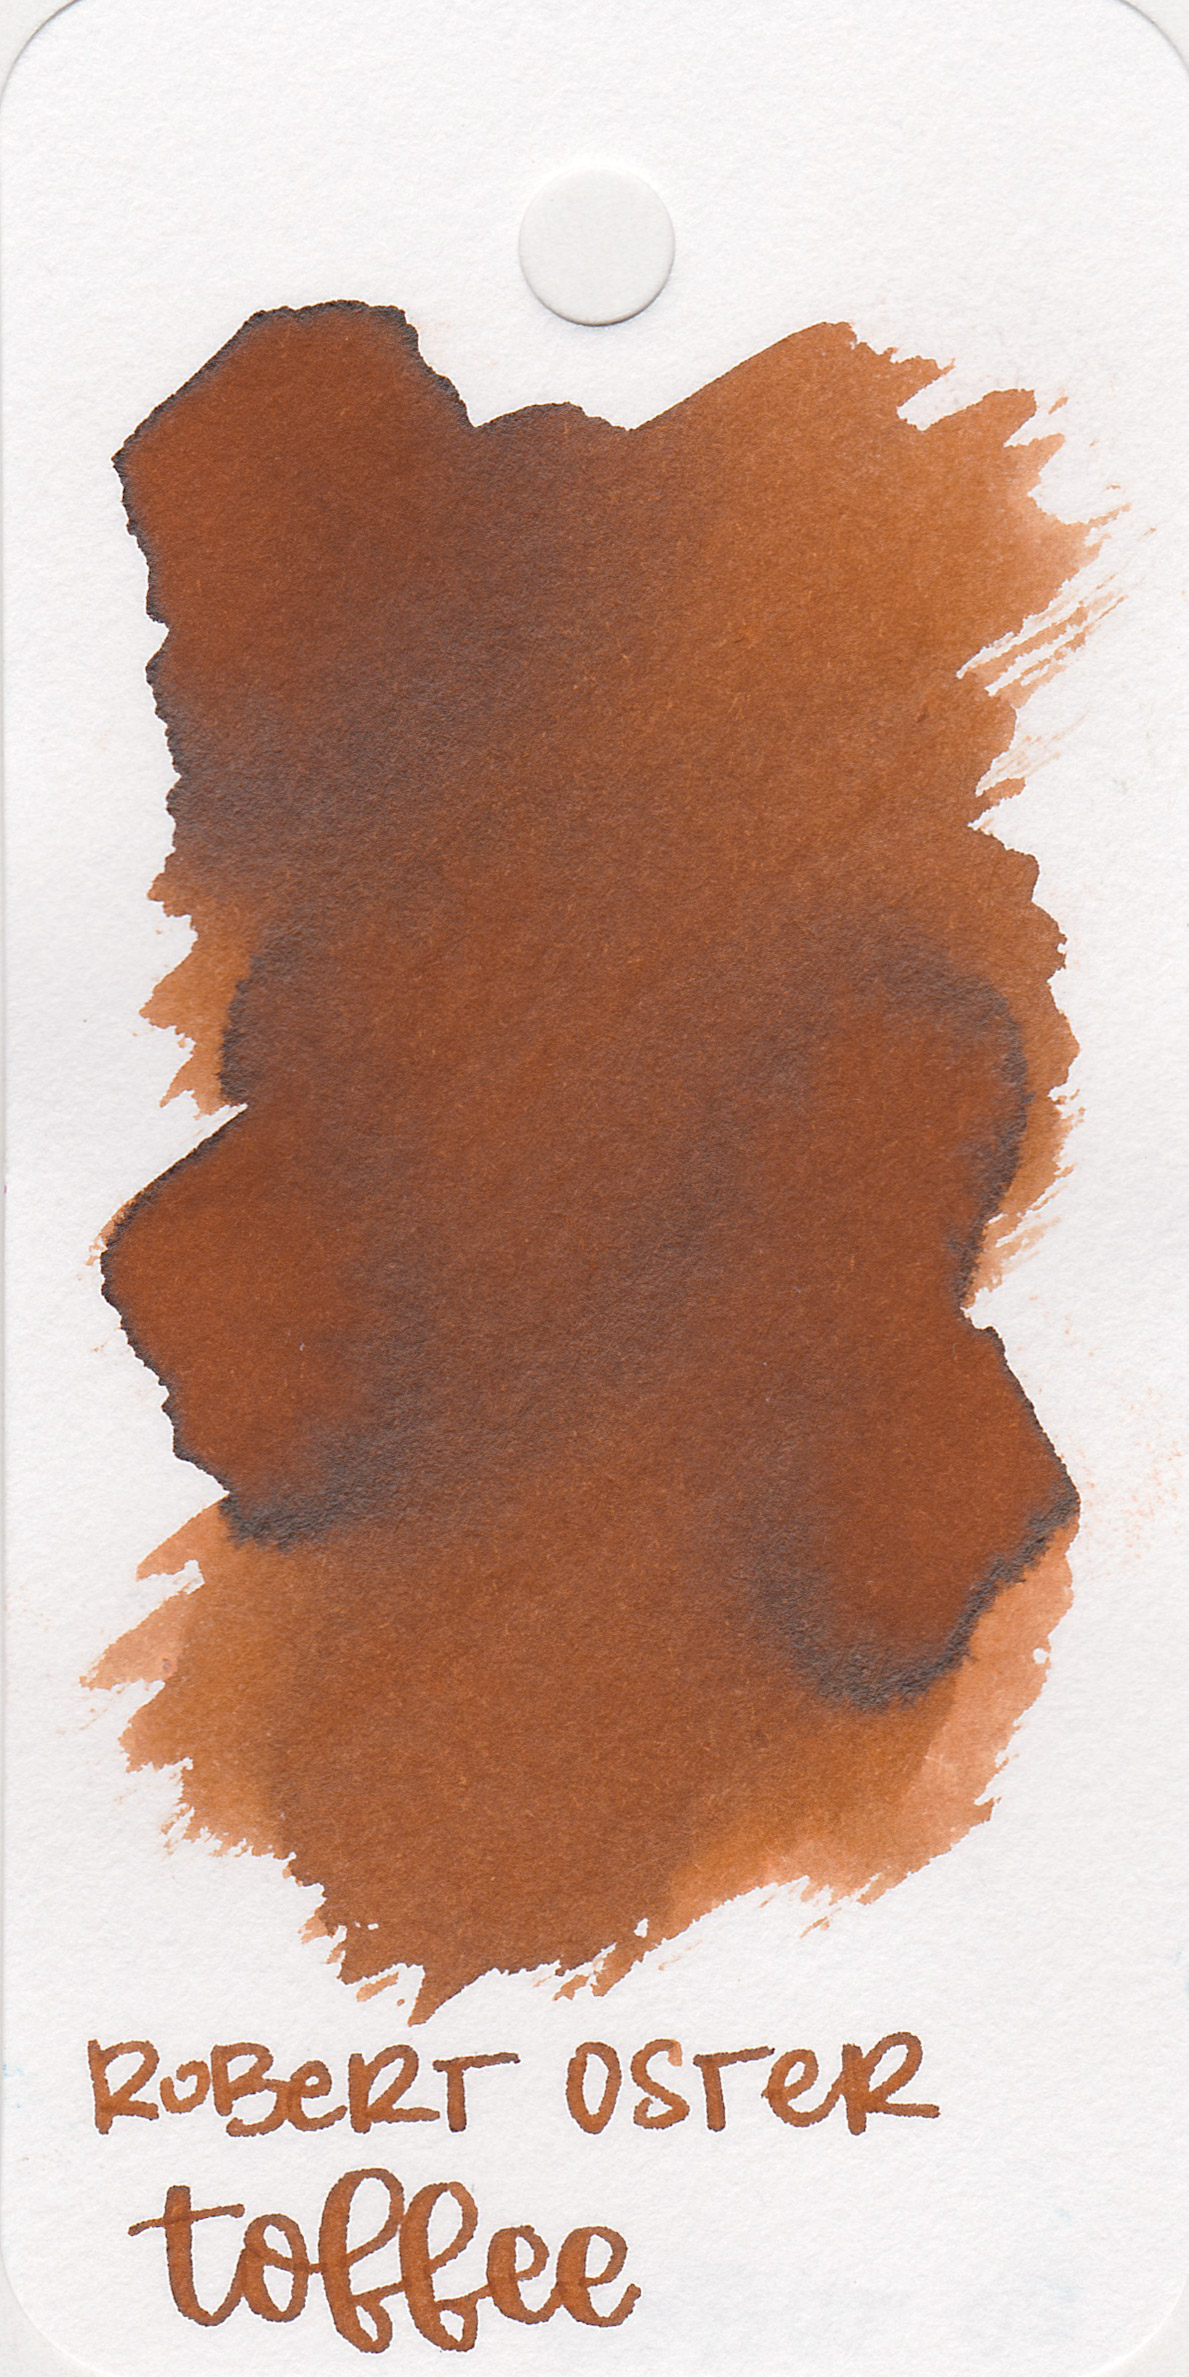 The color: - Toffee is just that-a medium toffee brown, so the name is fitting.